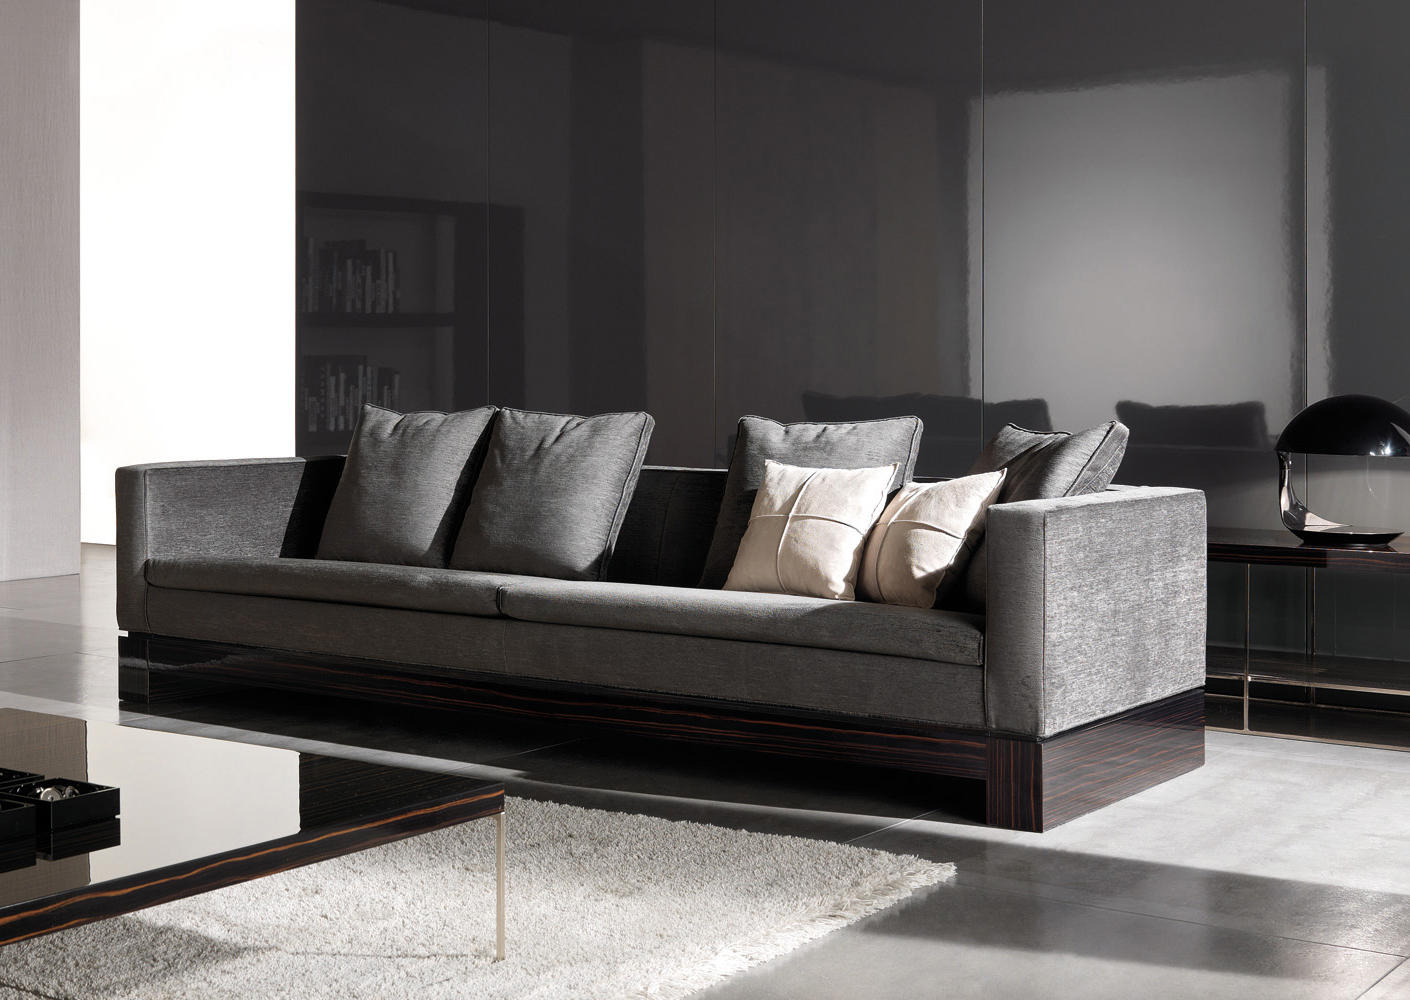 KLIMT - Lounge sofas from Minotti | Architonic